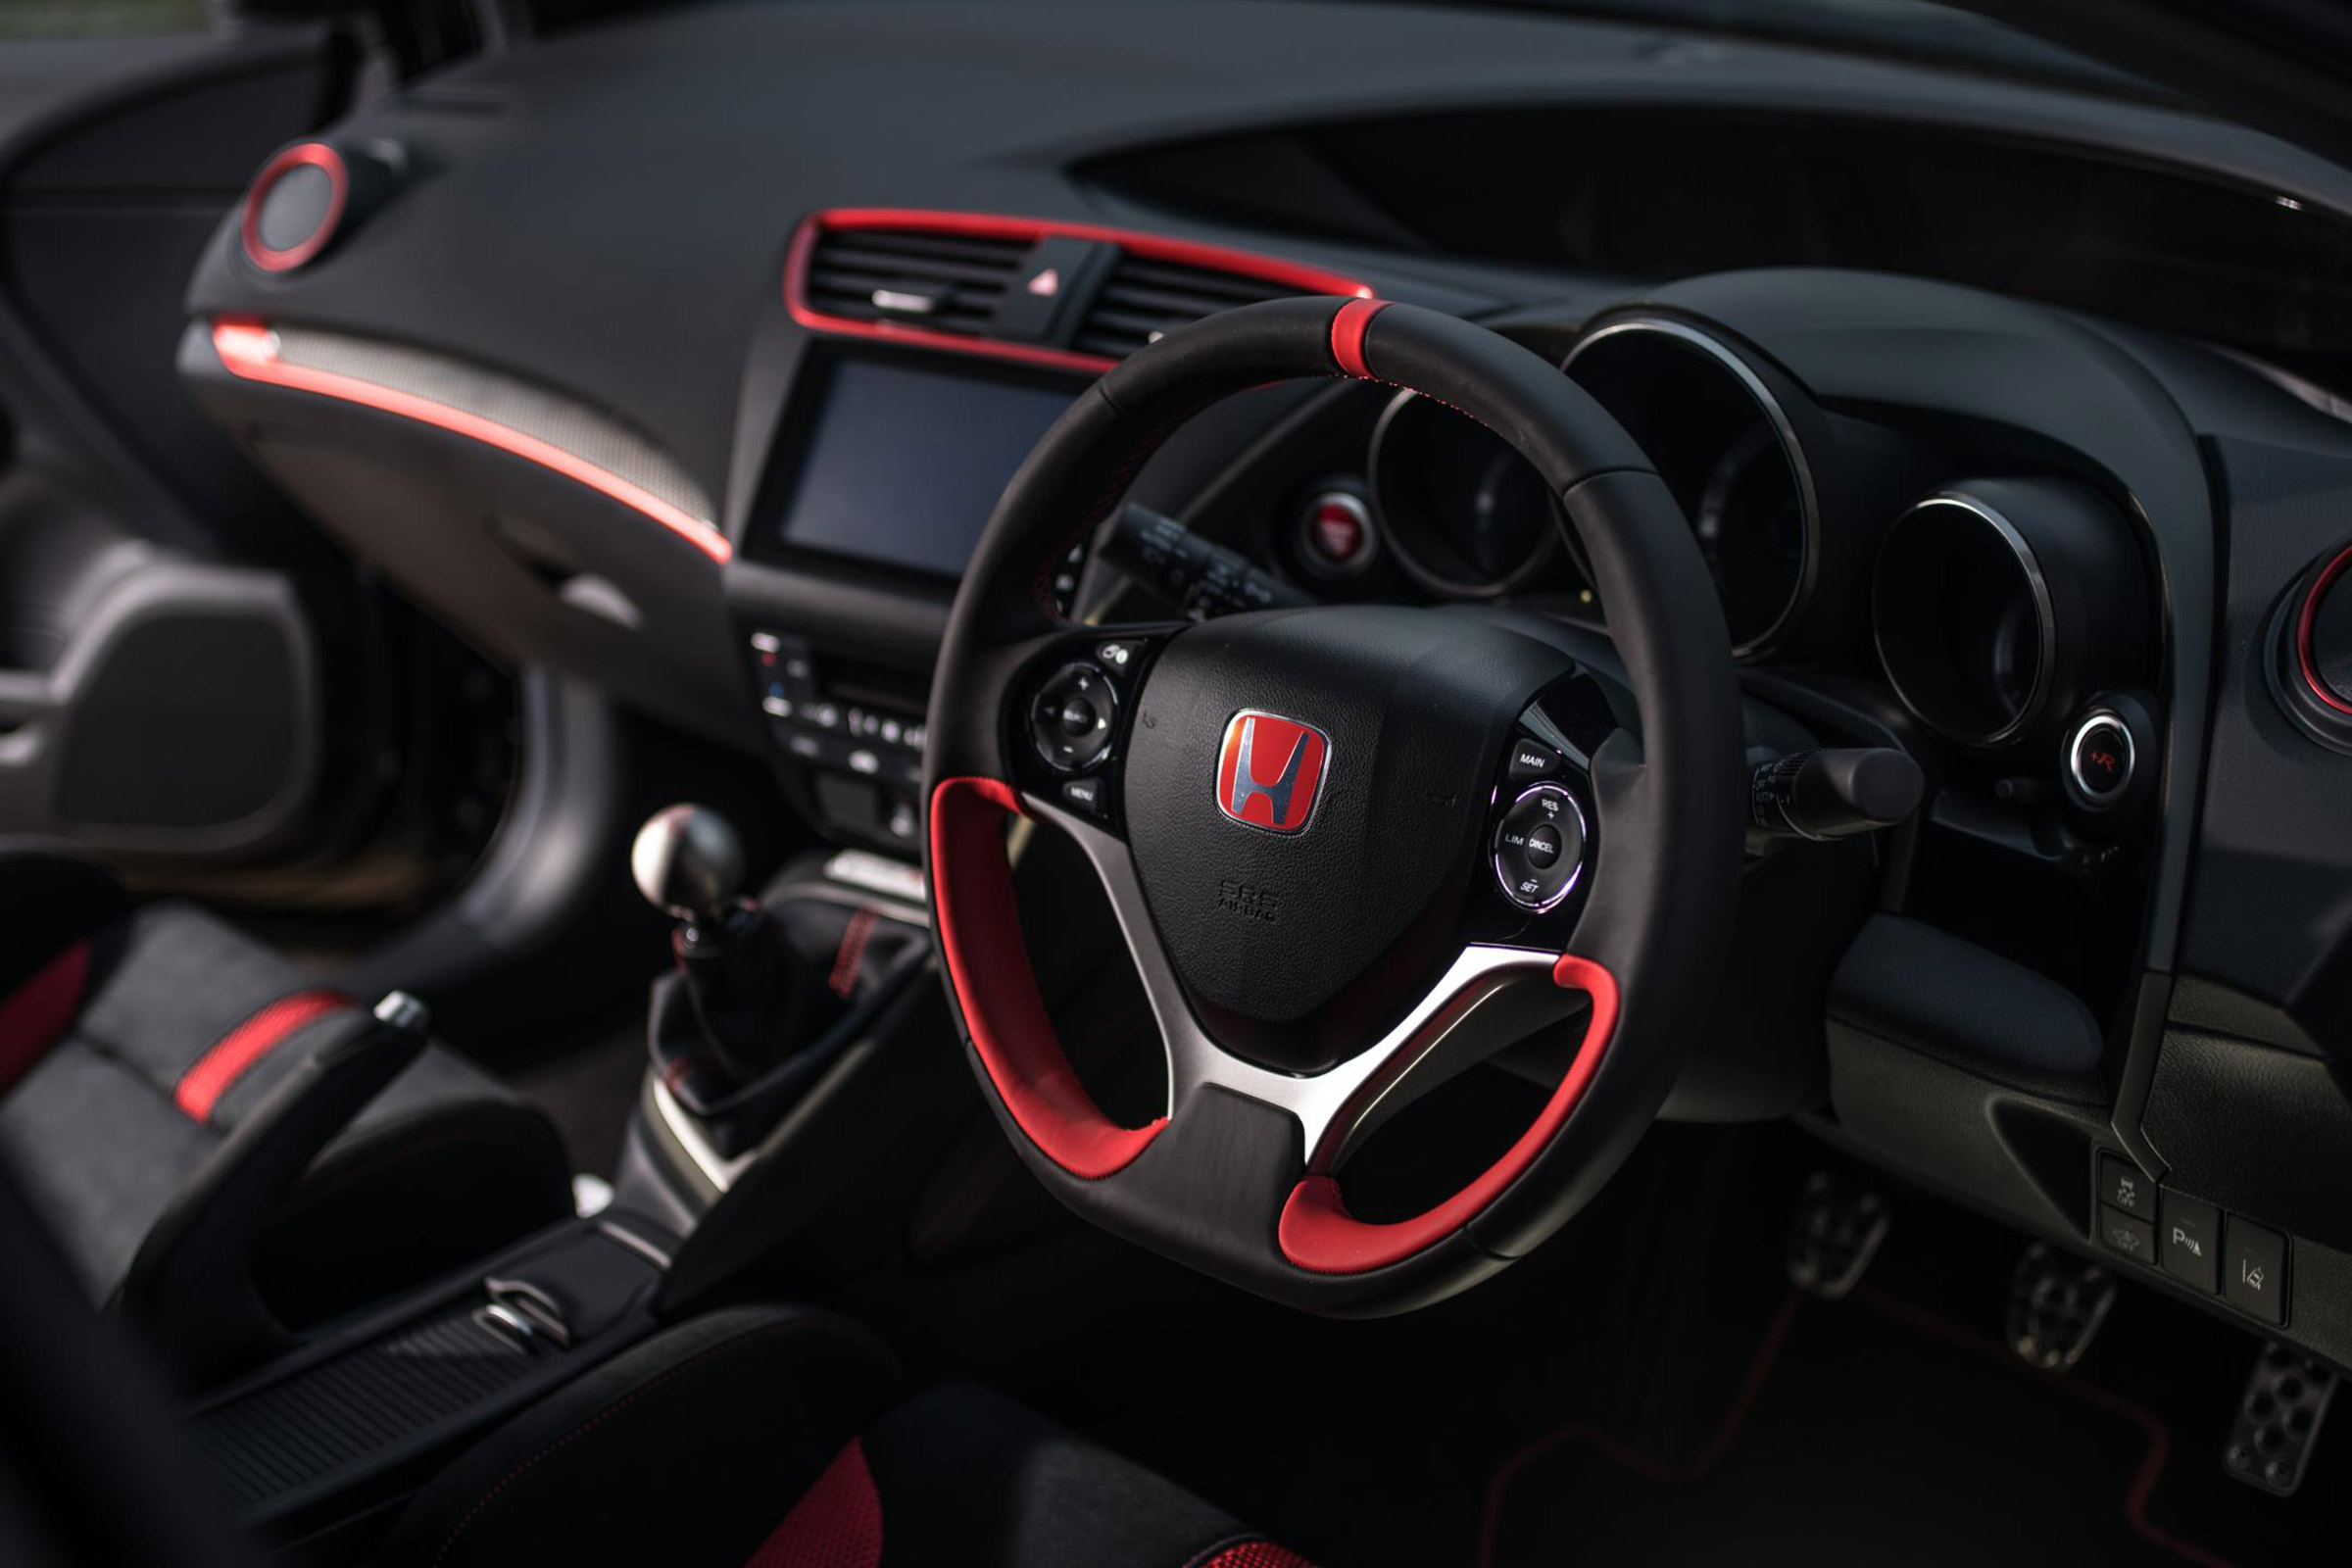 2017 Honda Civic Type R Black Edition Interior Driver Cockpit Steering (Photo 4 of 6)